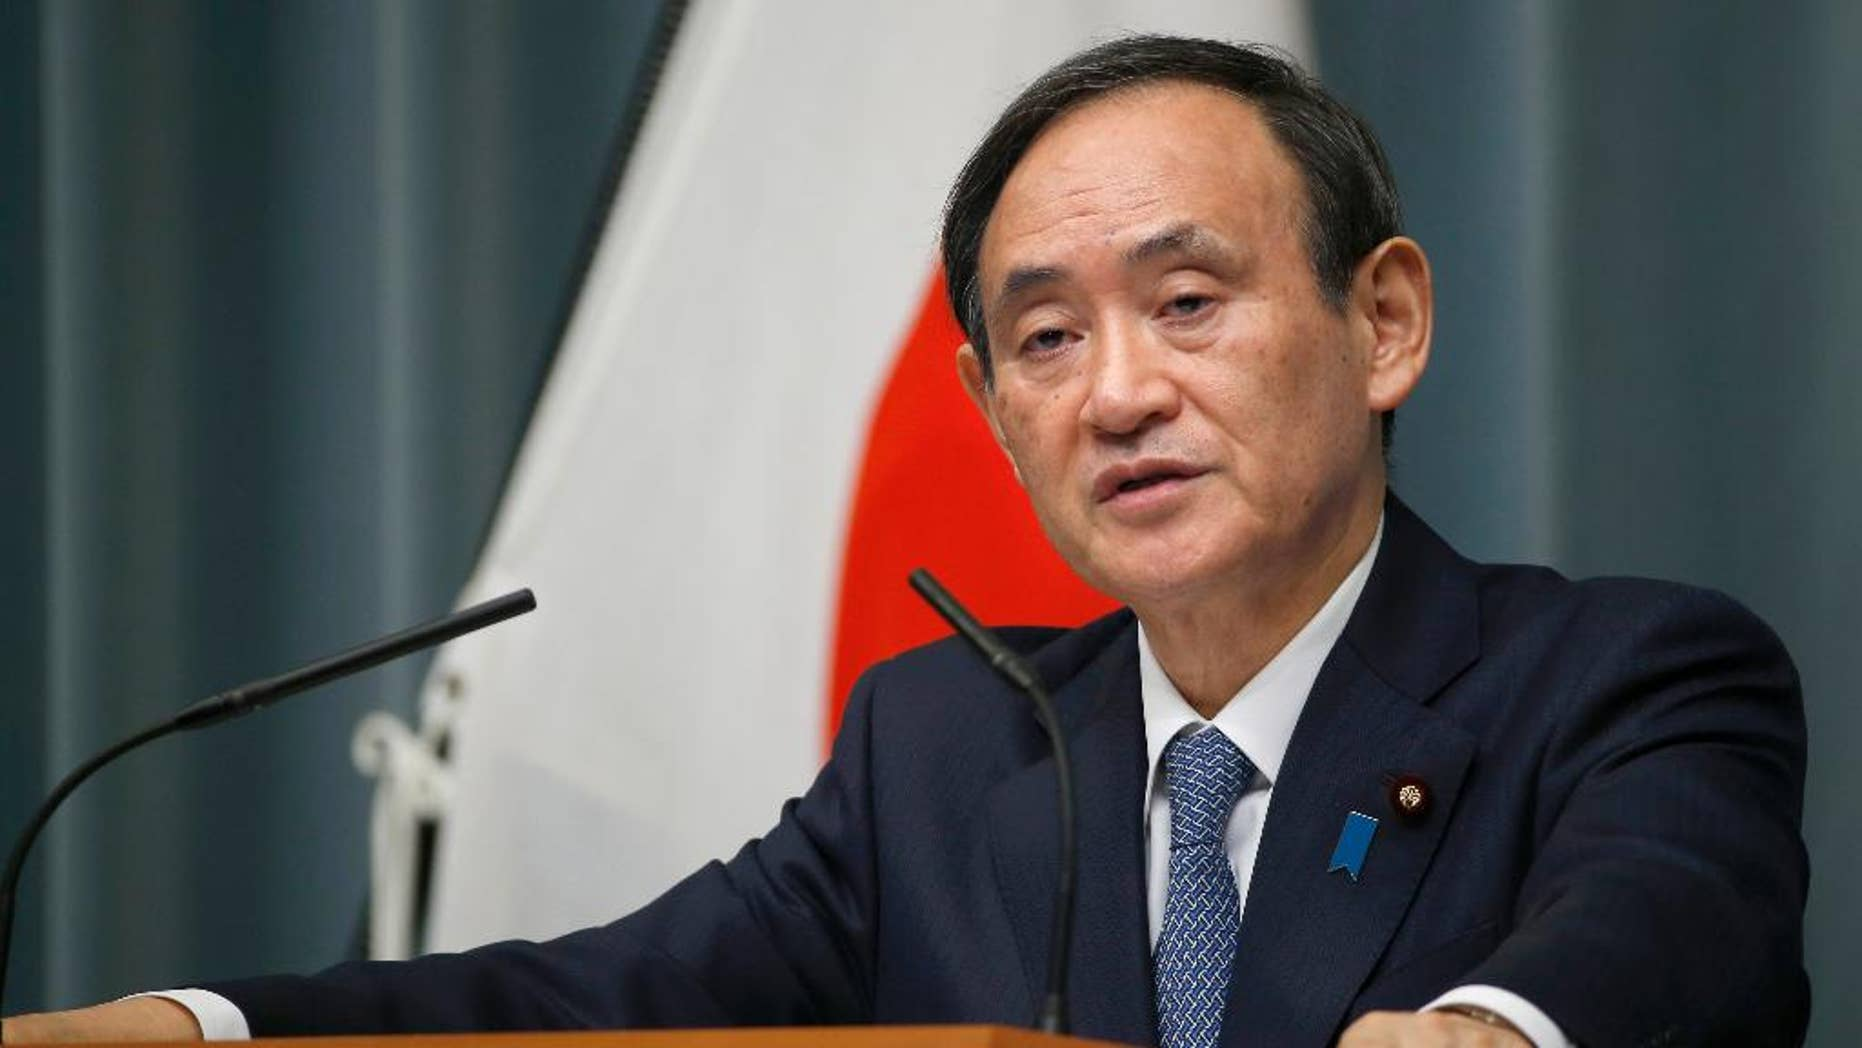 """FILE - In this Feb. 10, 2016, file photo, Japan's Chief Cabinet Secretary Yoshihide Suga speaks to the media during a press conference at the prime minister's official residence in Tokyo. Japanese government spokesman Suga said Monday, March 28, 2016, that Japan would stand by its non-nuclear weapons stance, after U.S. presidential candidate Donald Trump said he would be open to Japan and South Korea having nuclear weapons. Suga told reporters Monday that """"the three principles of not owning, making or allowing nuclear weapons remain important government basic policy."""" (AP Photo/Shizuo Kambayashi, File)"""